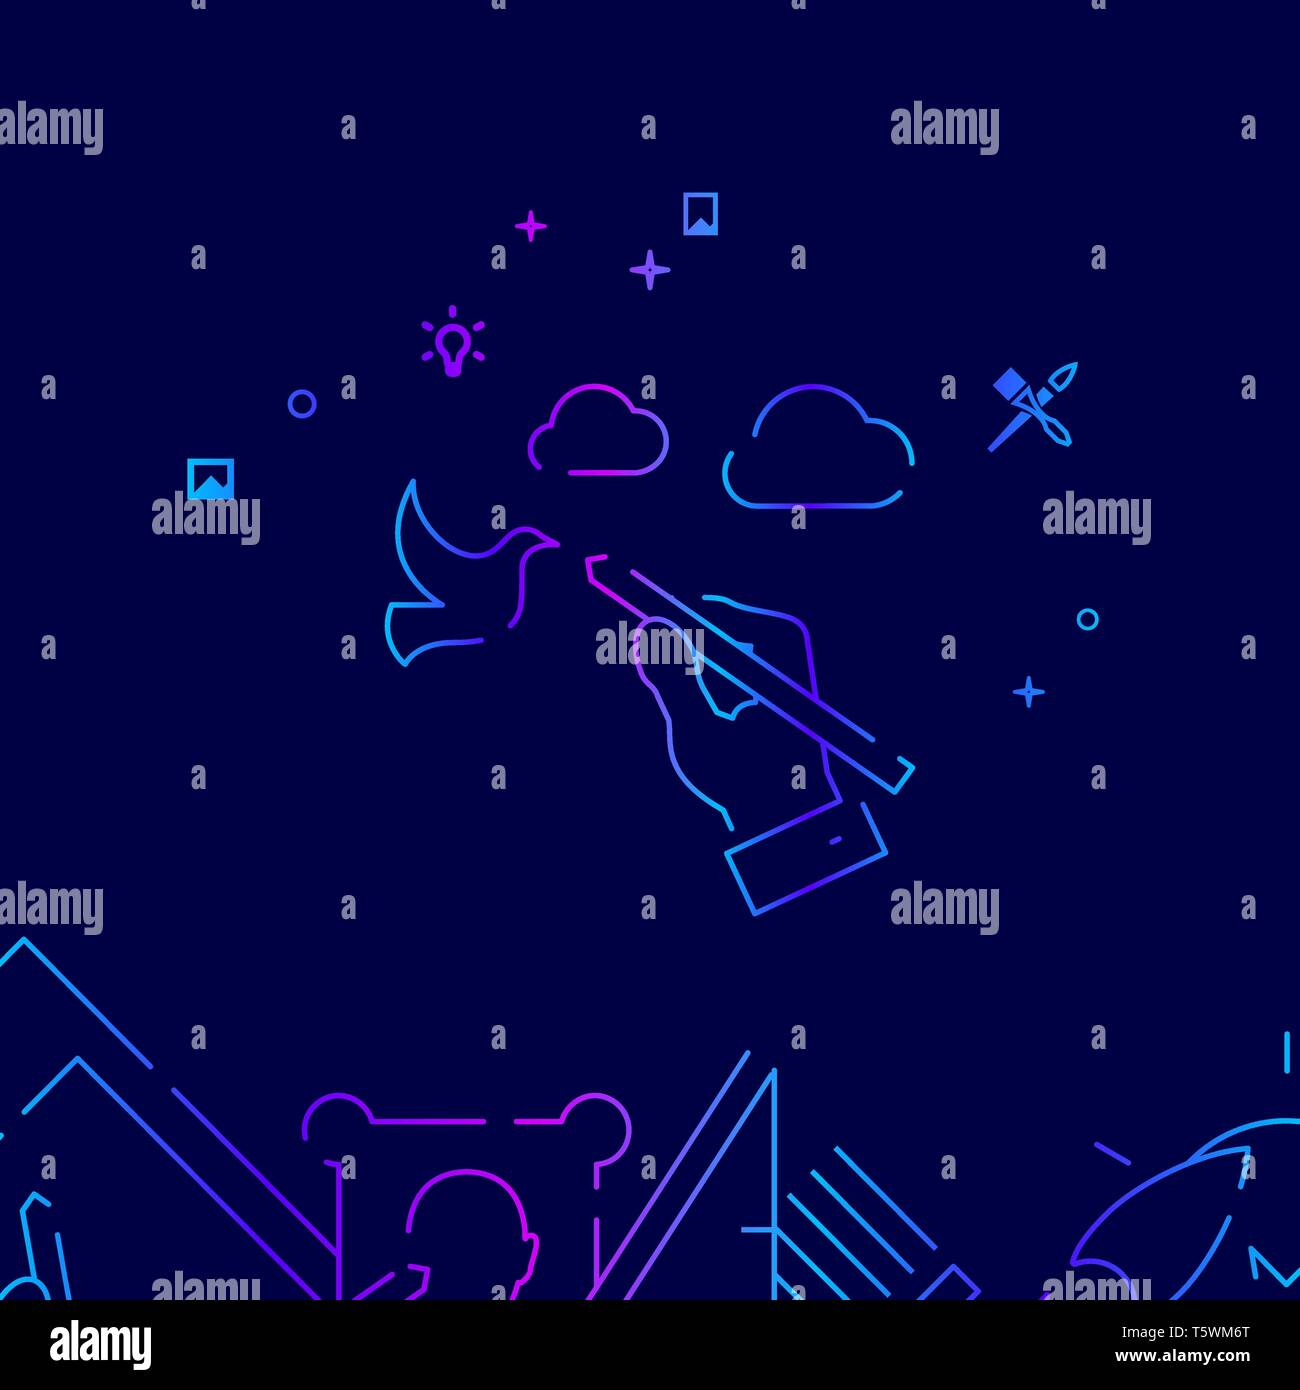 Hand Draws Landscape Vector Line Illustration. Art, Design and Creativity Gradient Icon, Symbol or Pictogram, Sign. Dark Blue Background. Related Bott - Stock Vector